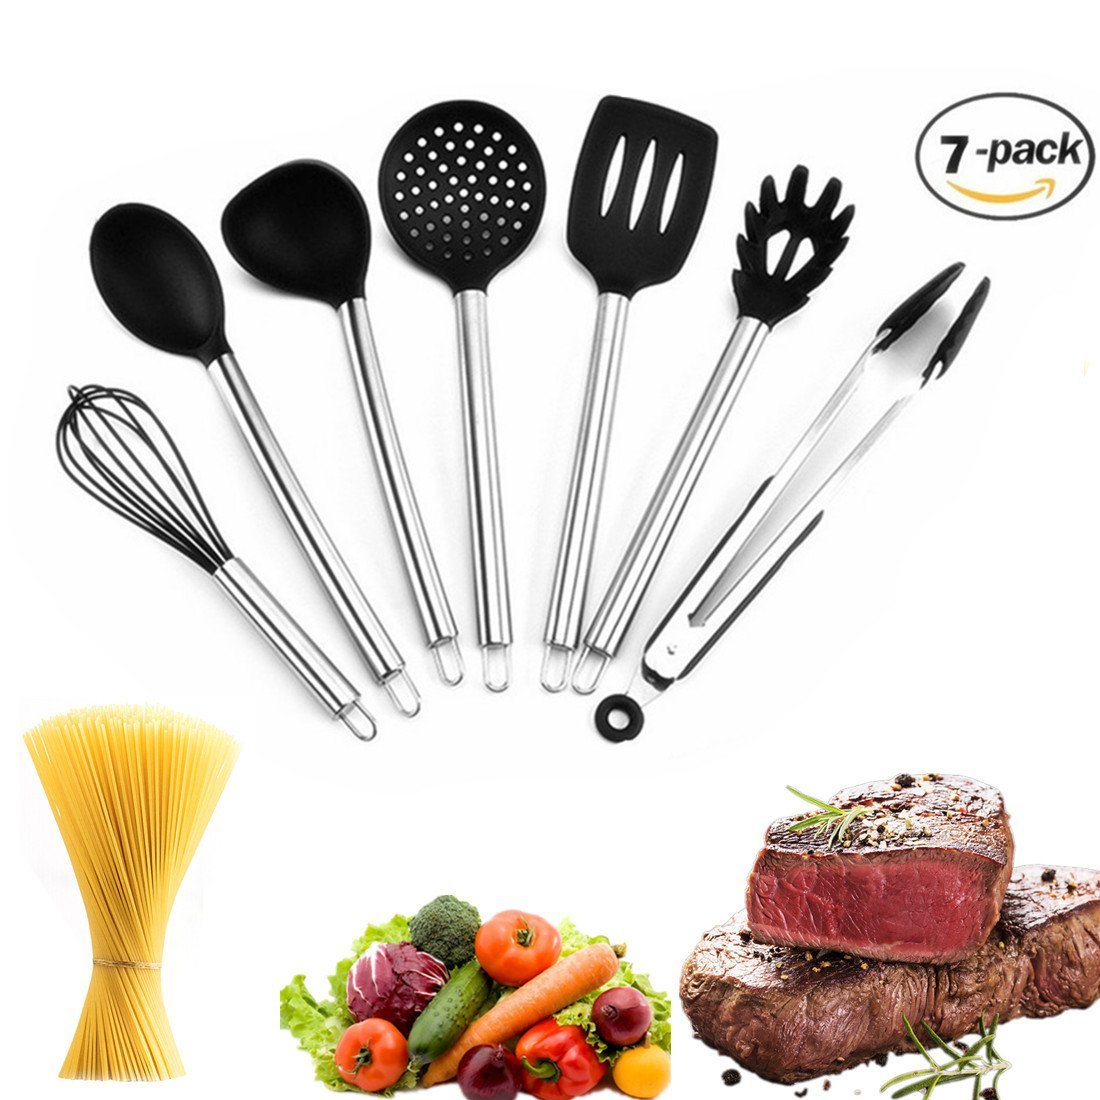 Kitchen Utensils Set Silicone Cooking Utensil - 7 Piece Stainless Steel Handle Utensils for Nonstick Pots Pans Utensil Set Including Turner Spaghetti Server Skimmer Serving Spoon Ladle Food Tong Whisk (7 pcs utensils set) Love your kitchen